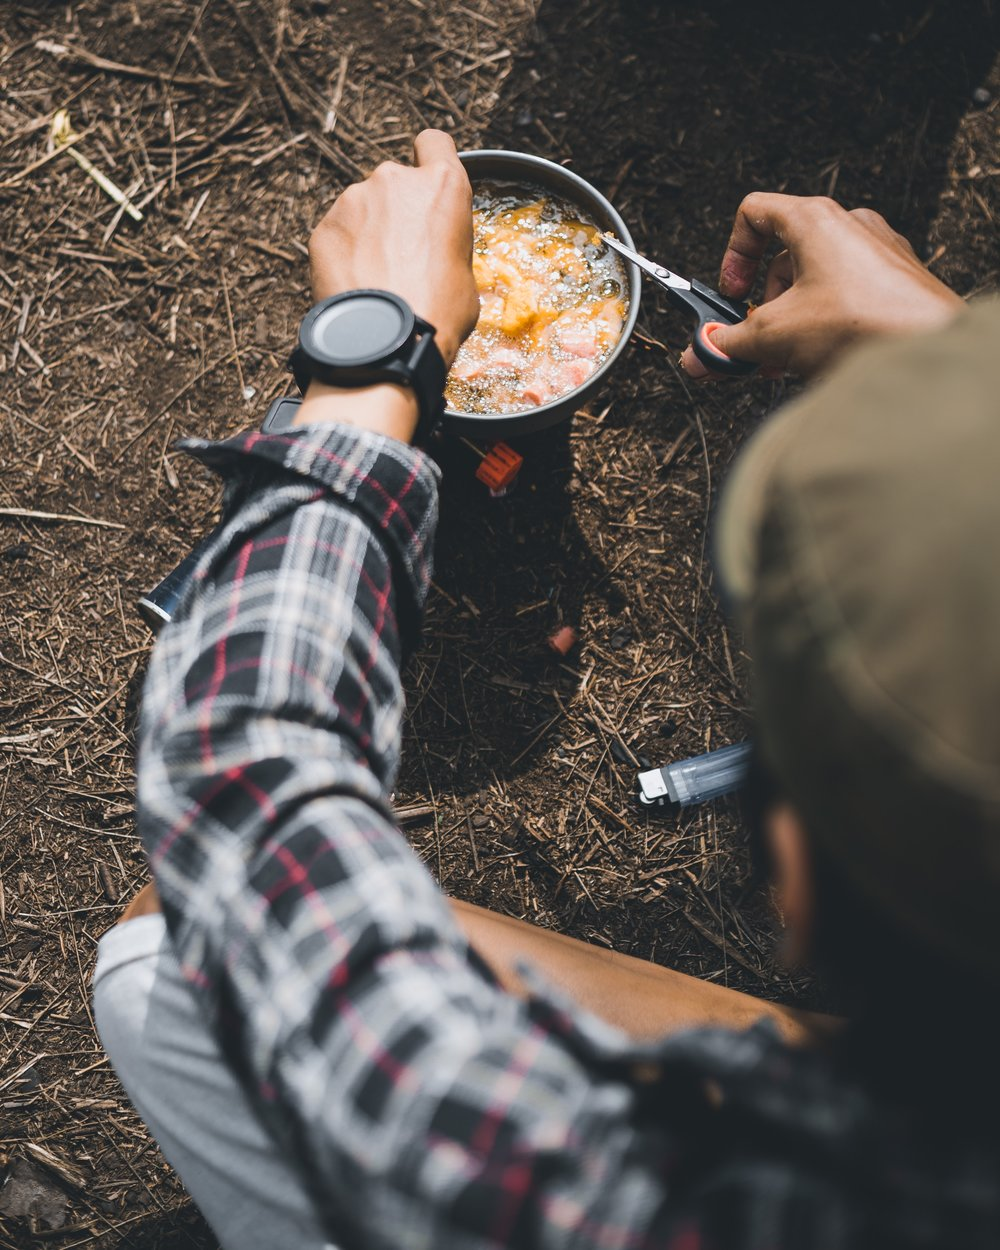 Sample Meal Plan for an Overnight Camping Trip - DINNERHearty soup or stew like this one with plenty of protein, with some cheese on the side (cheese packs a lot of calories per weight, and therefore makes great hiking/camping food) and some chocolate (preferably paper-wrapped) for dessertBREAKFASTCoffee, oatmeal with brown sugar and raisinsSNACKPeanut butter oat bars like these (peanut butter also has a great calorie-to-weight ratio)